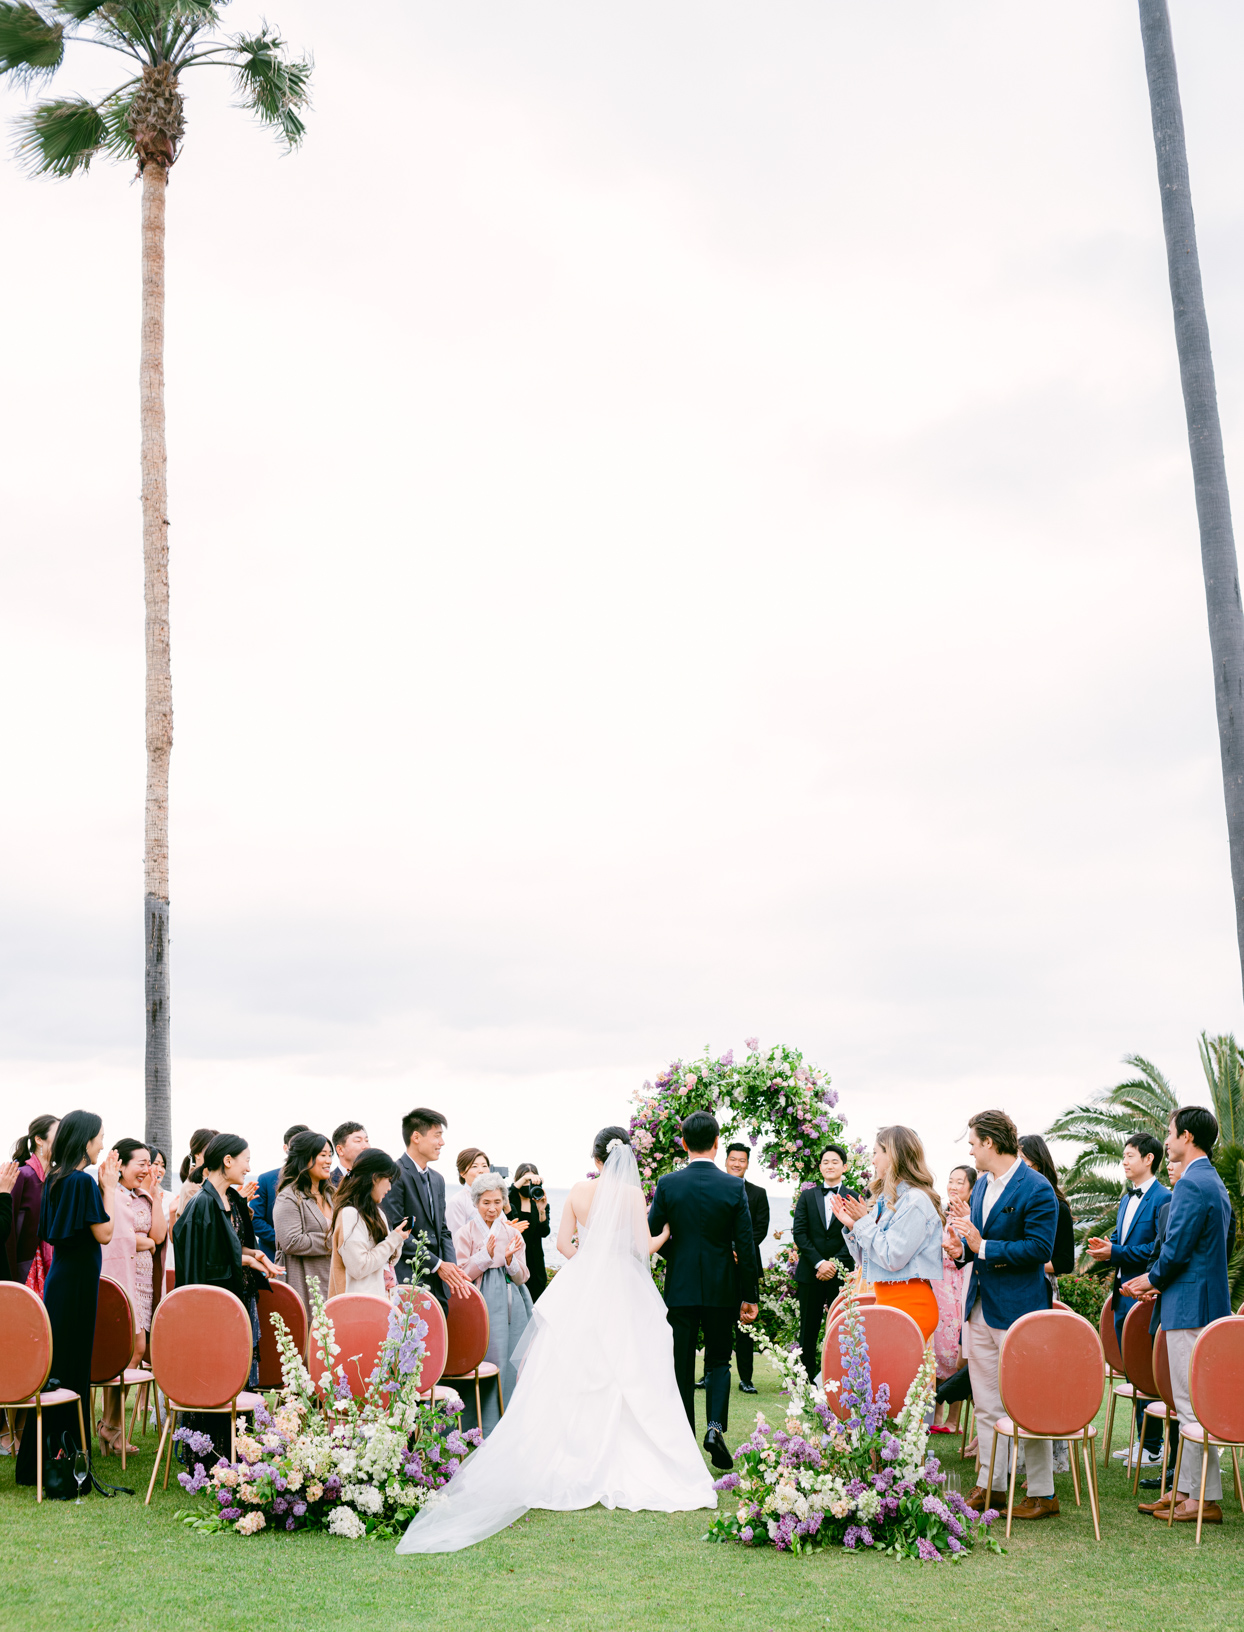 wedding ceremony processional guests standing